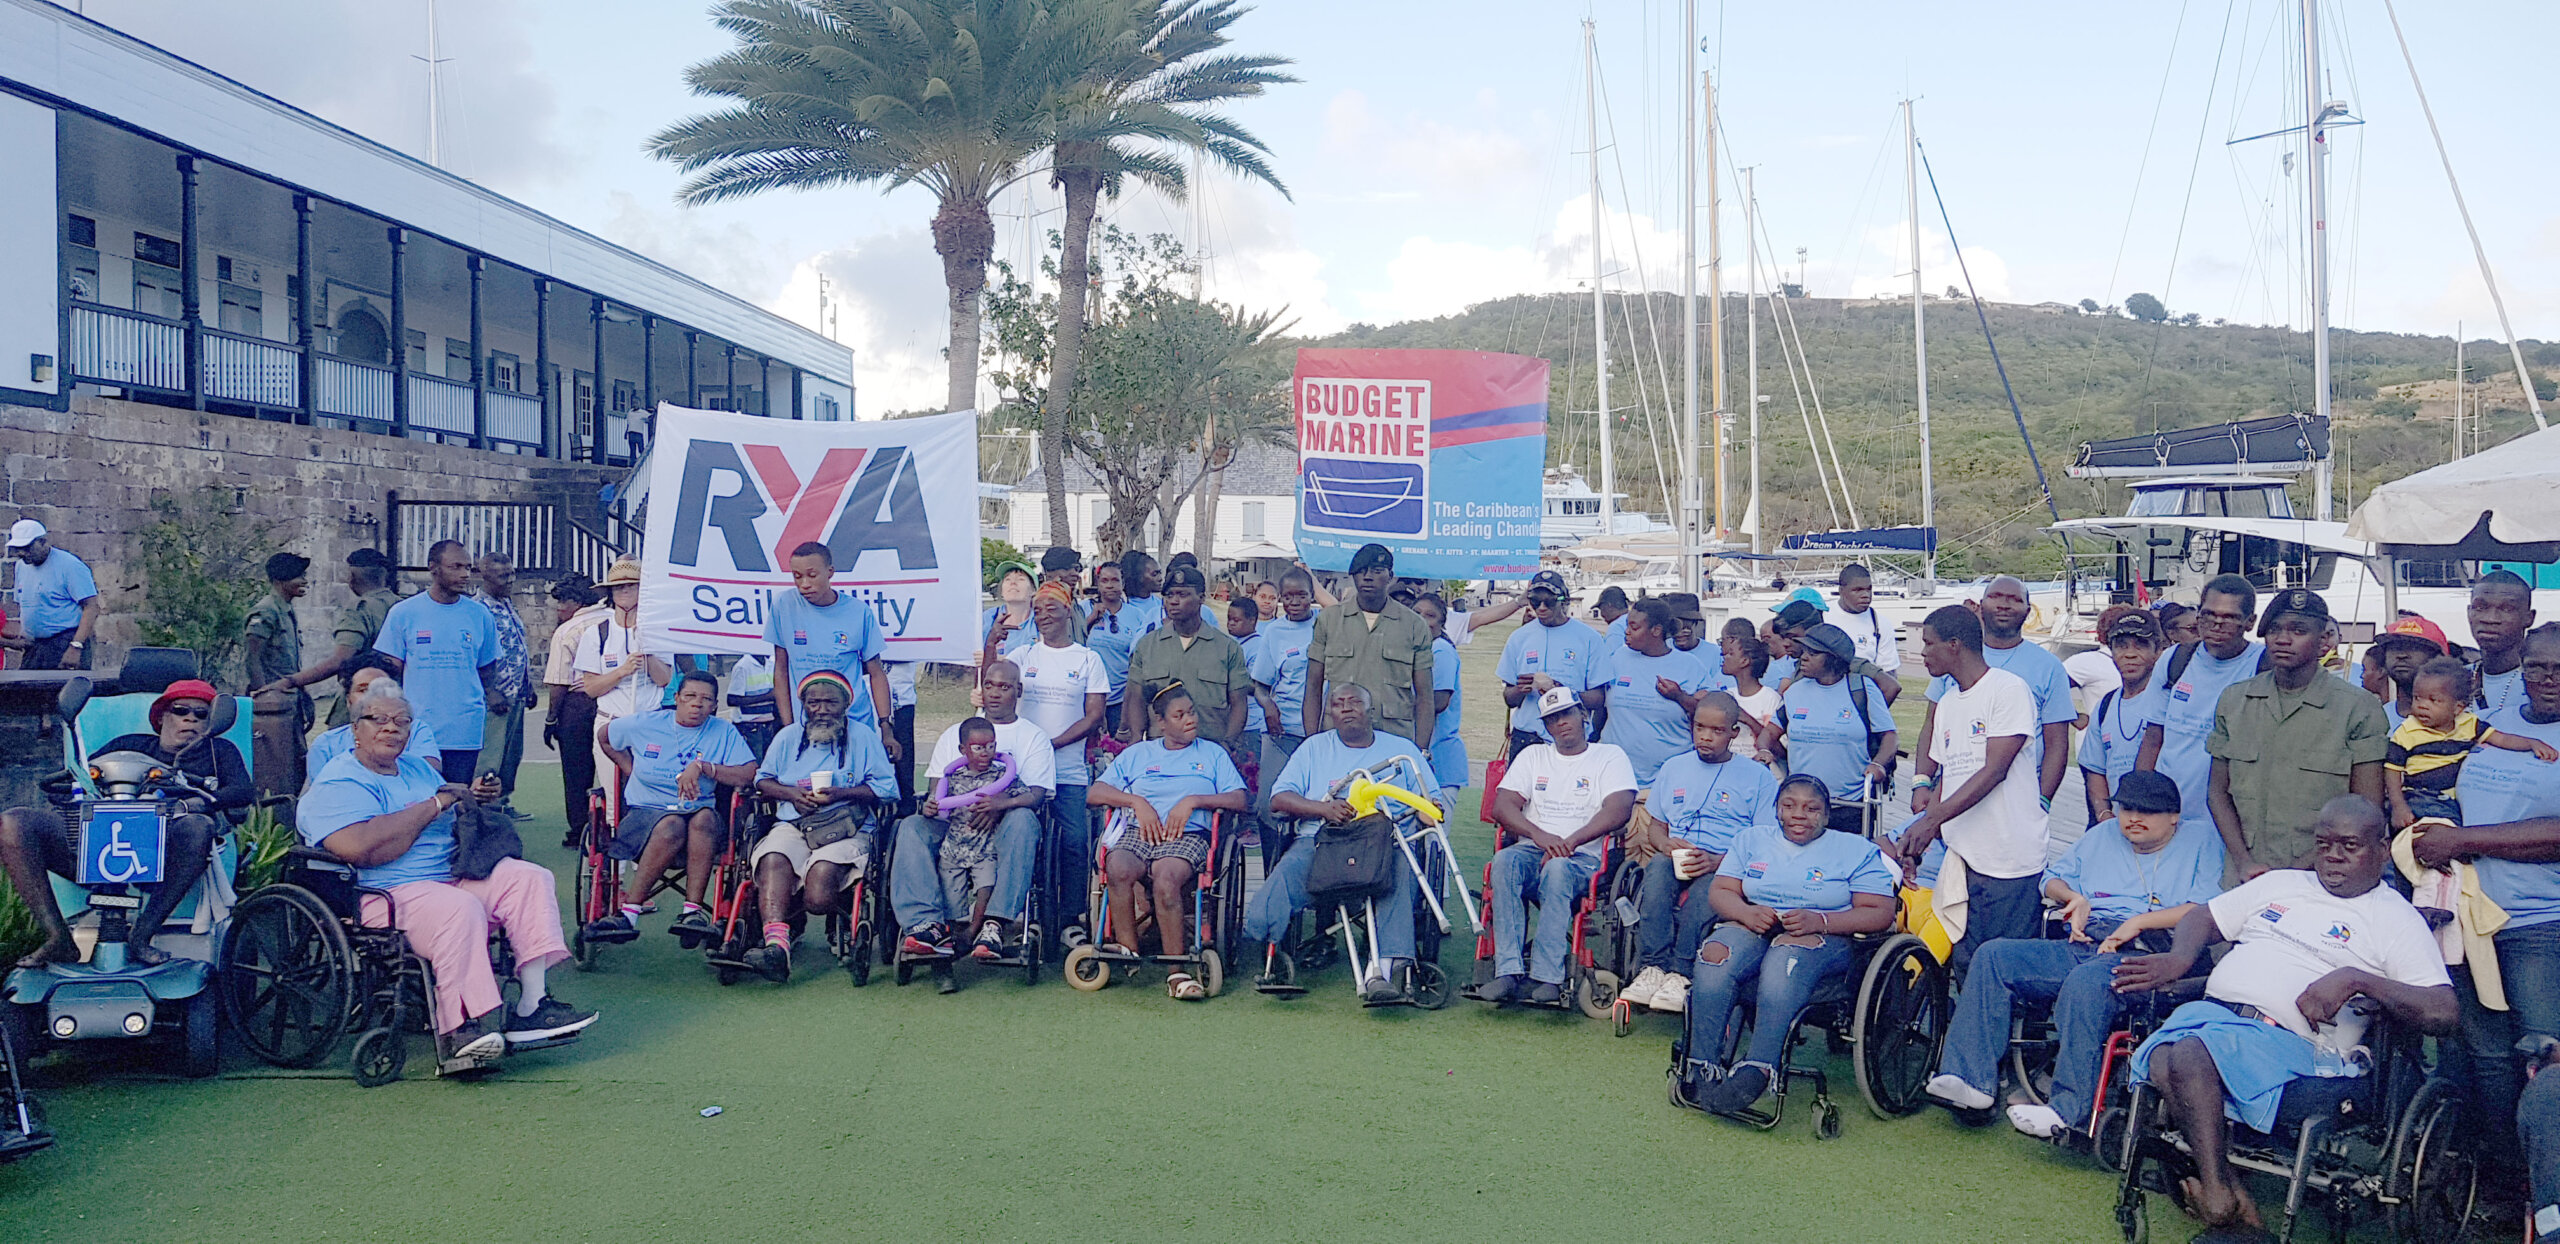 Nearly 350 people walked from the National Sailing Academy through English Harbour to Nelsons Dockyard. Most of the walkers were from the disabled community of Antigua with all manner of disability.